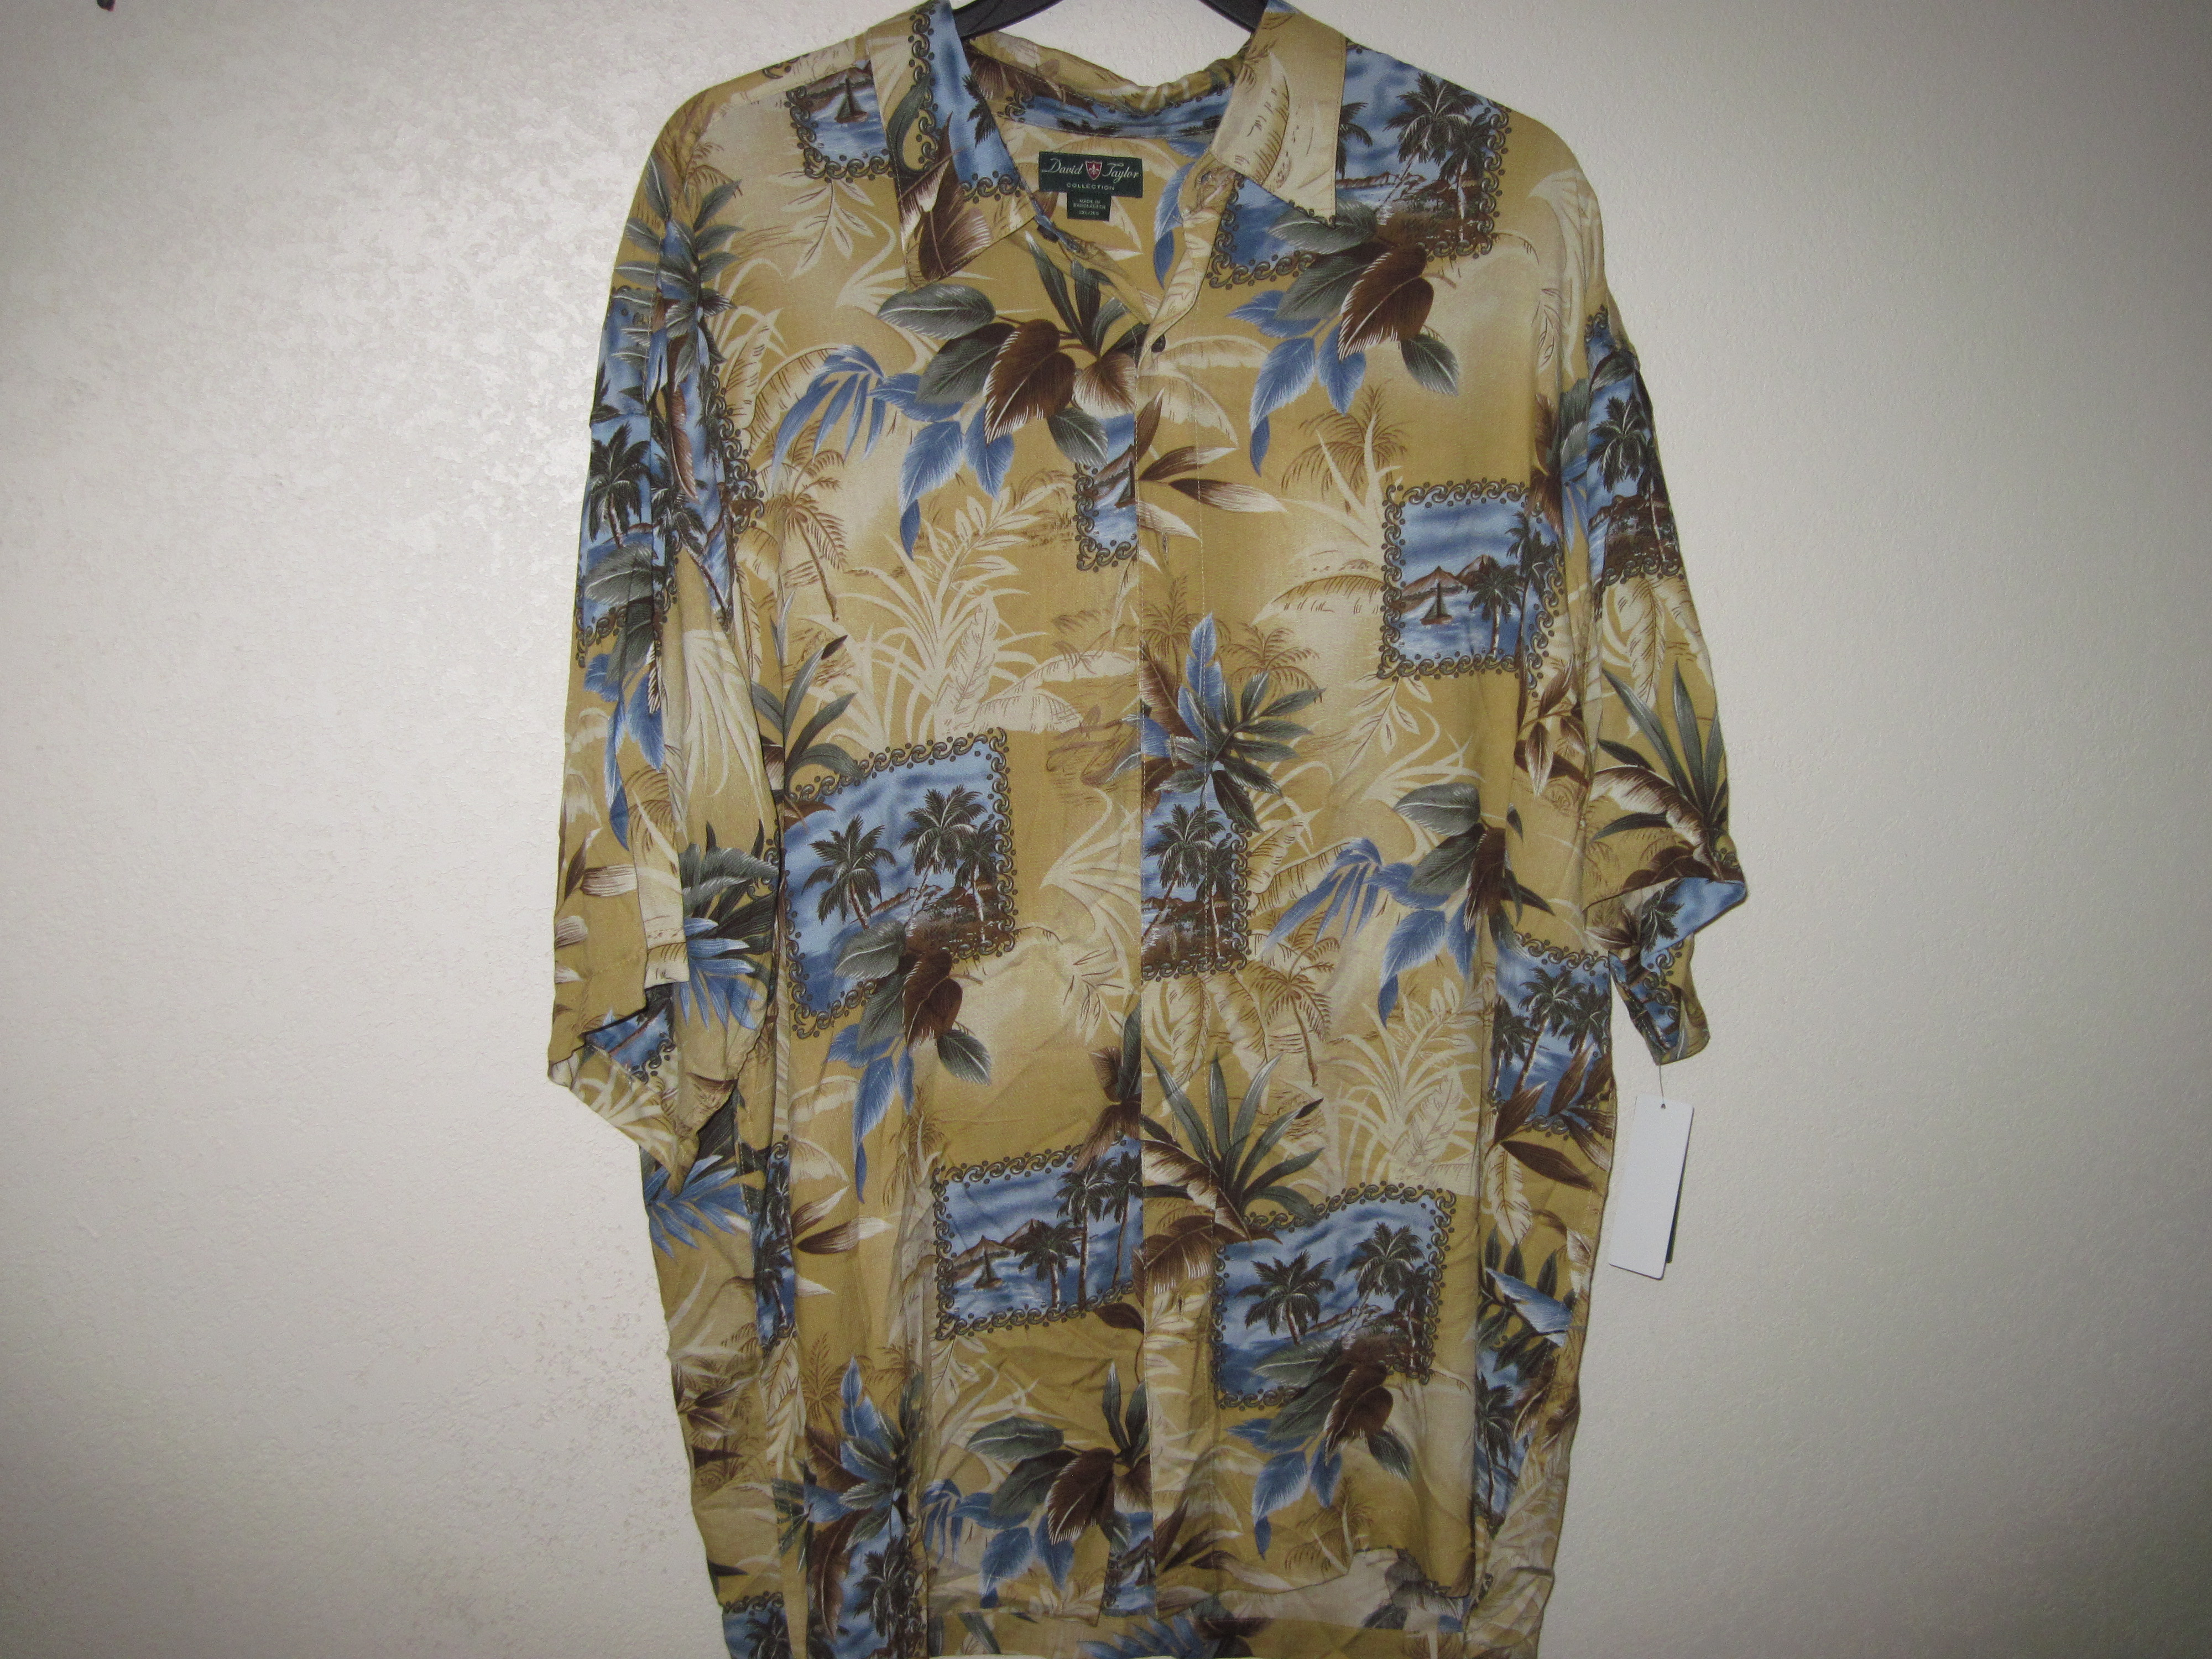 David Taylor Sz 2XLT Big & Tall (Tropical) Cream Shirt